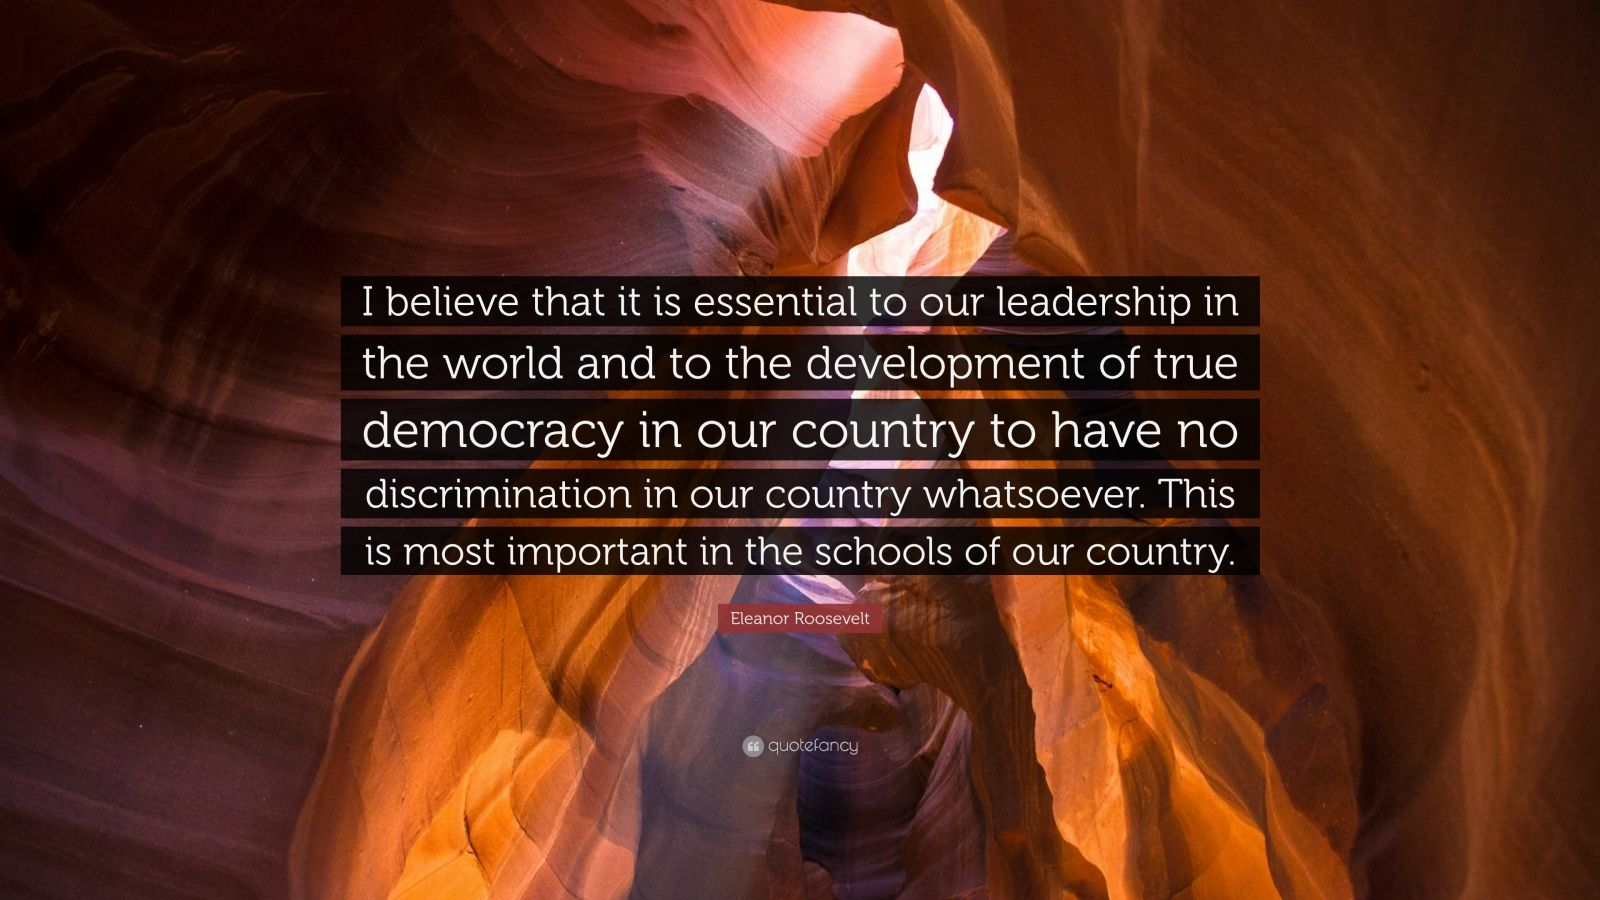 """Eleanor Roosevelt Quote: """"I believe that it is essential to our leadership in the world and to the development of true democracy in our country to have no discrimination in our country whatsoever. This is most important in the schools of our country."""""""